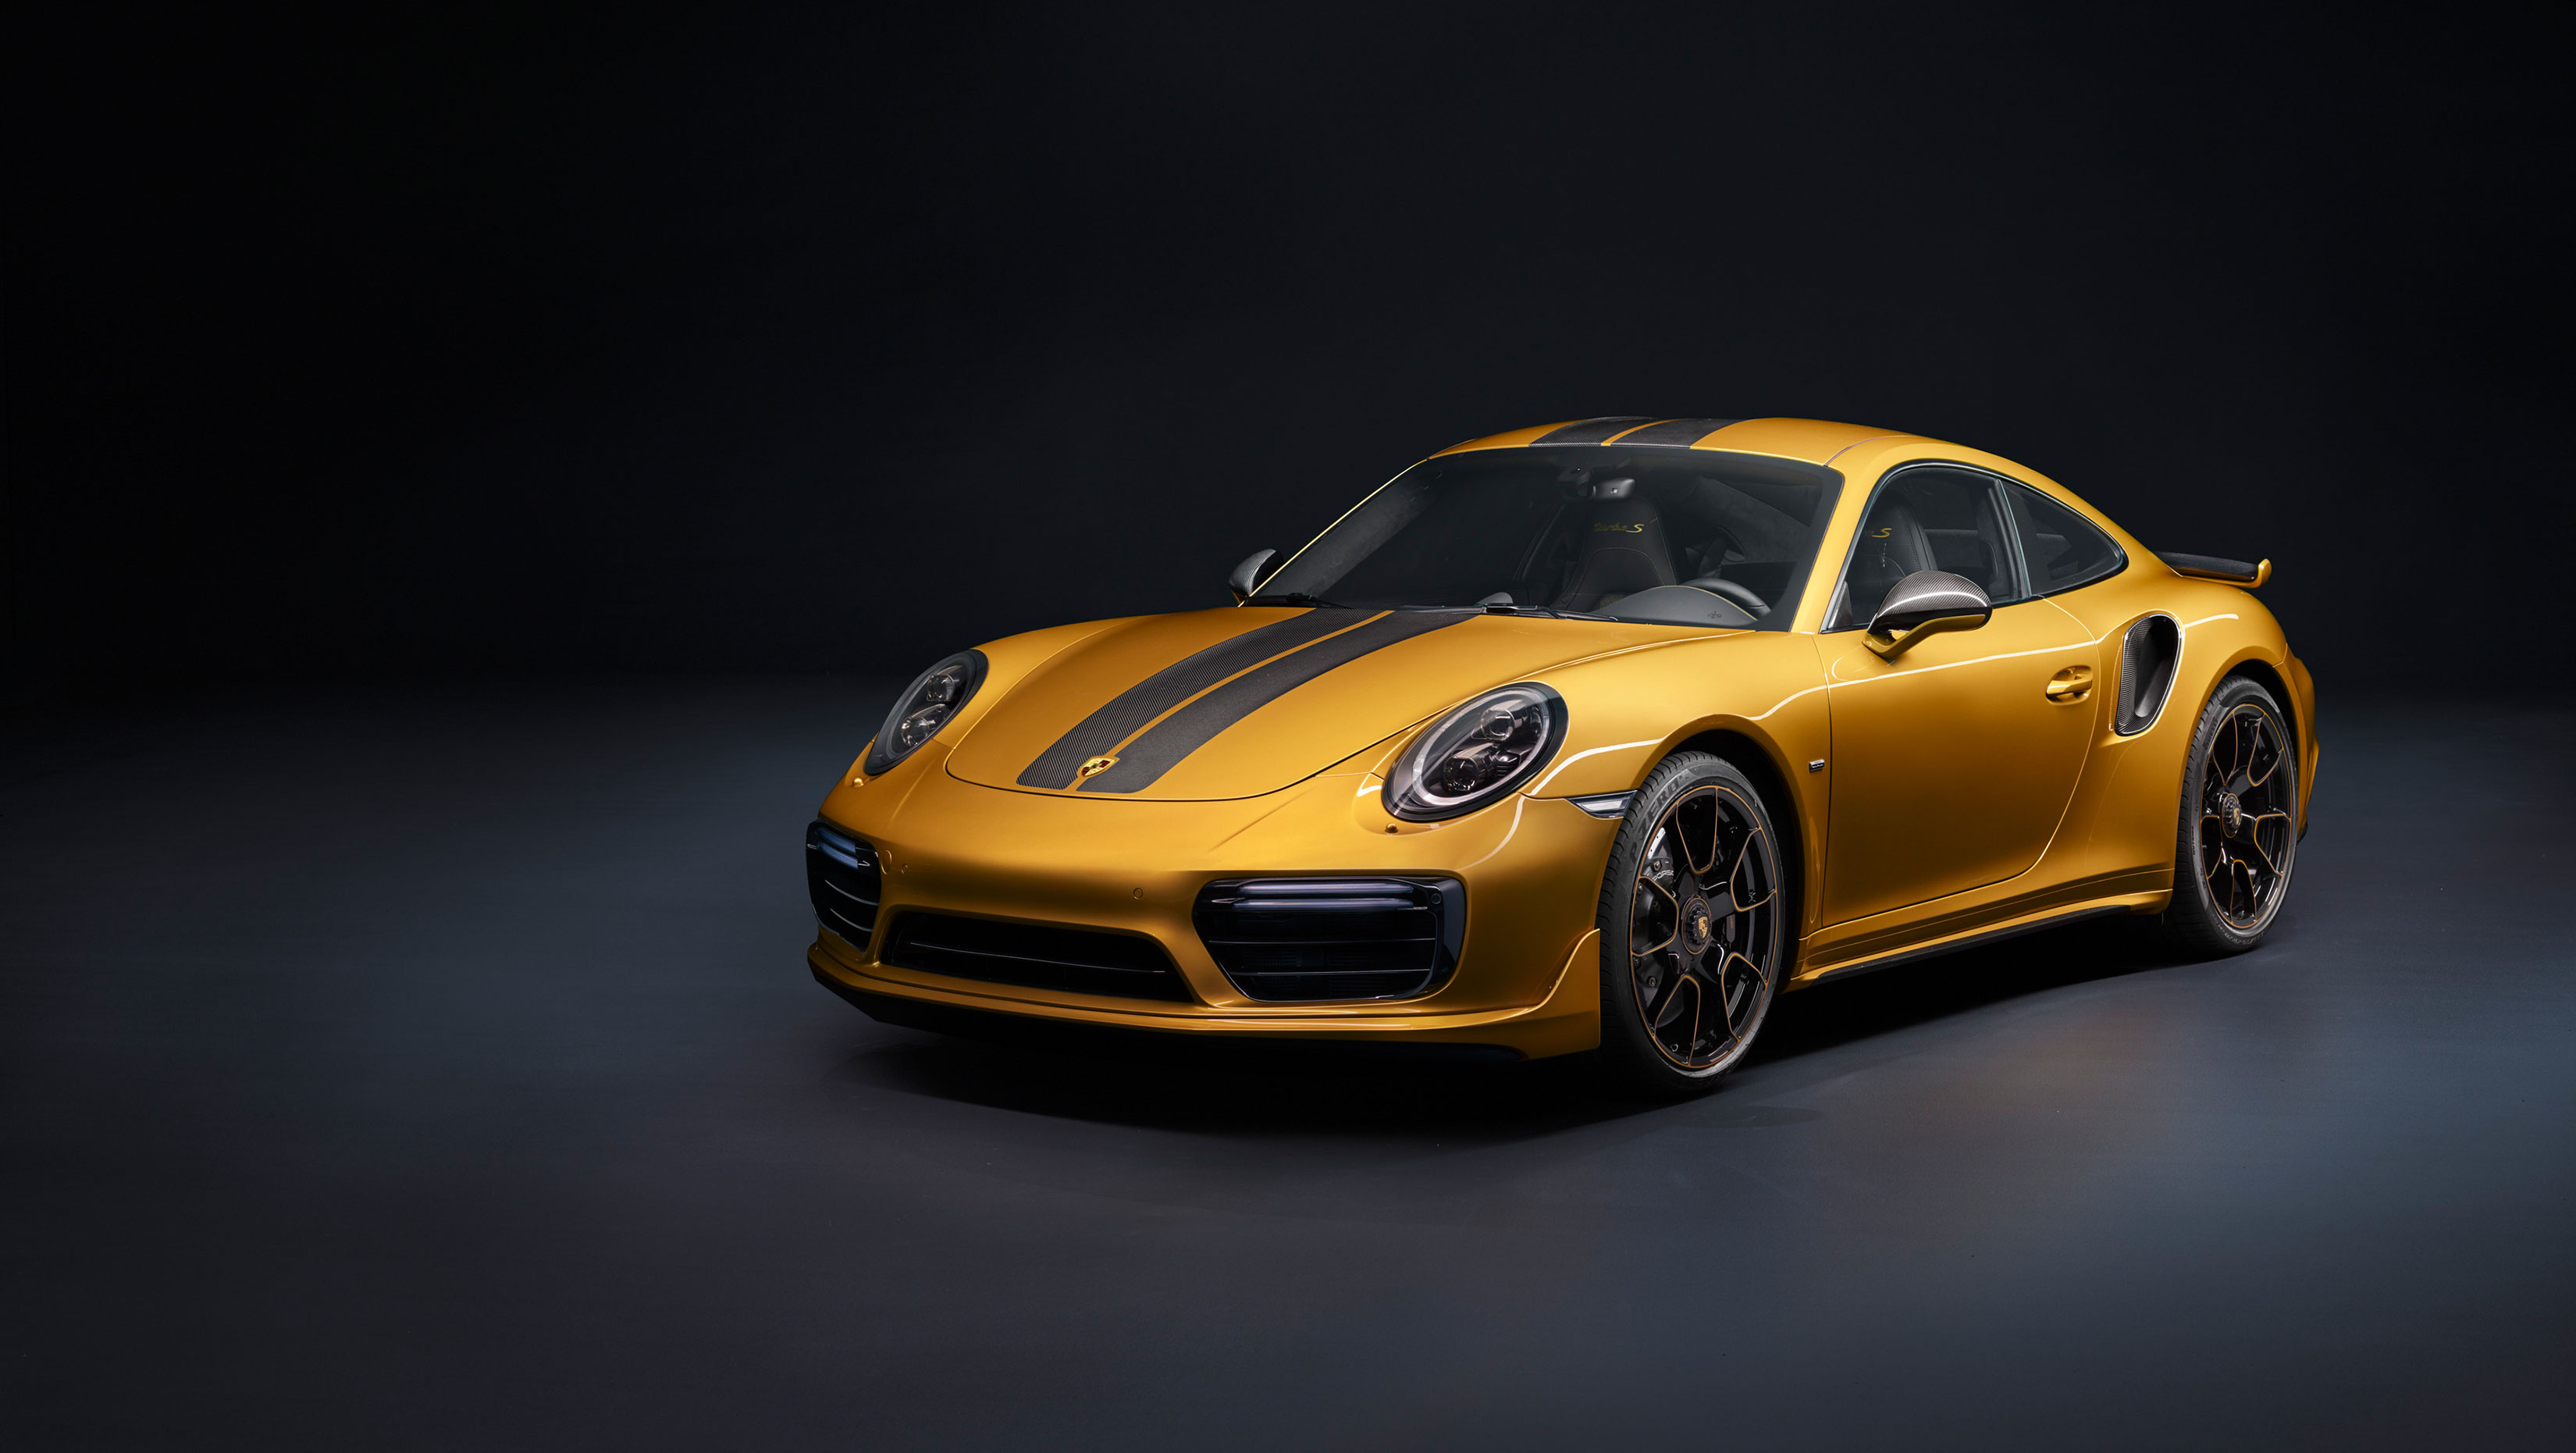 To Ensure This The 911 Turbo S Exclusive Series Is Made By Porsche Manufaktur They Create Bespoke As Well Limited Editions For